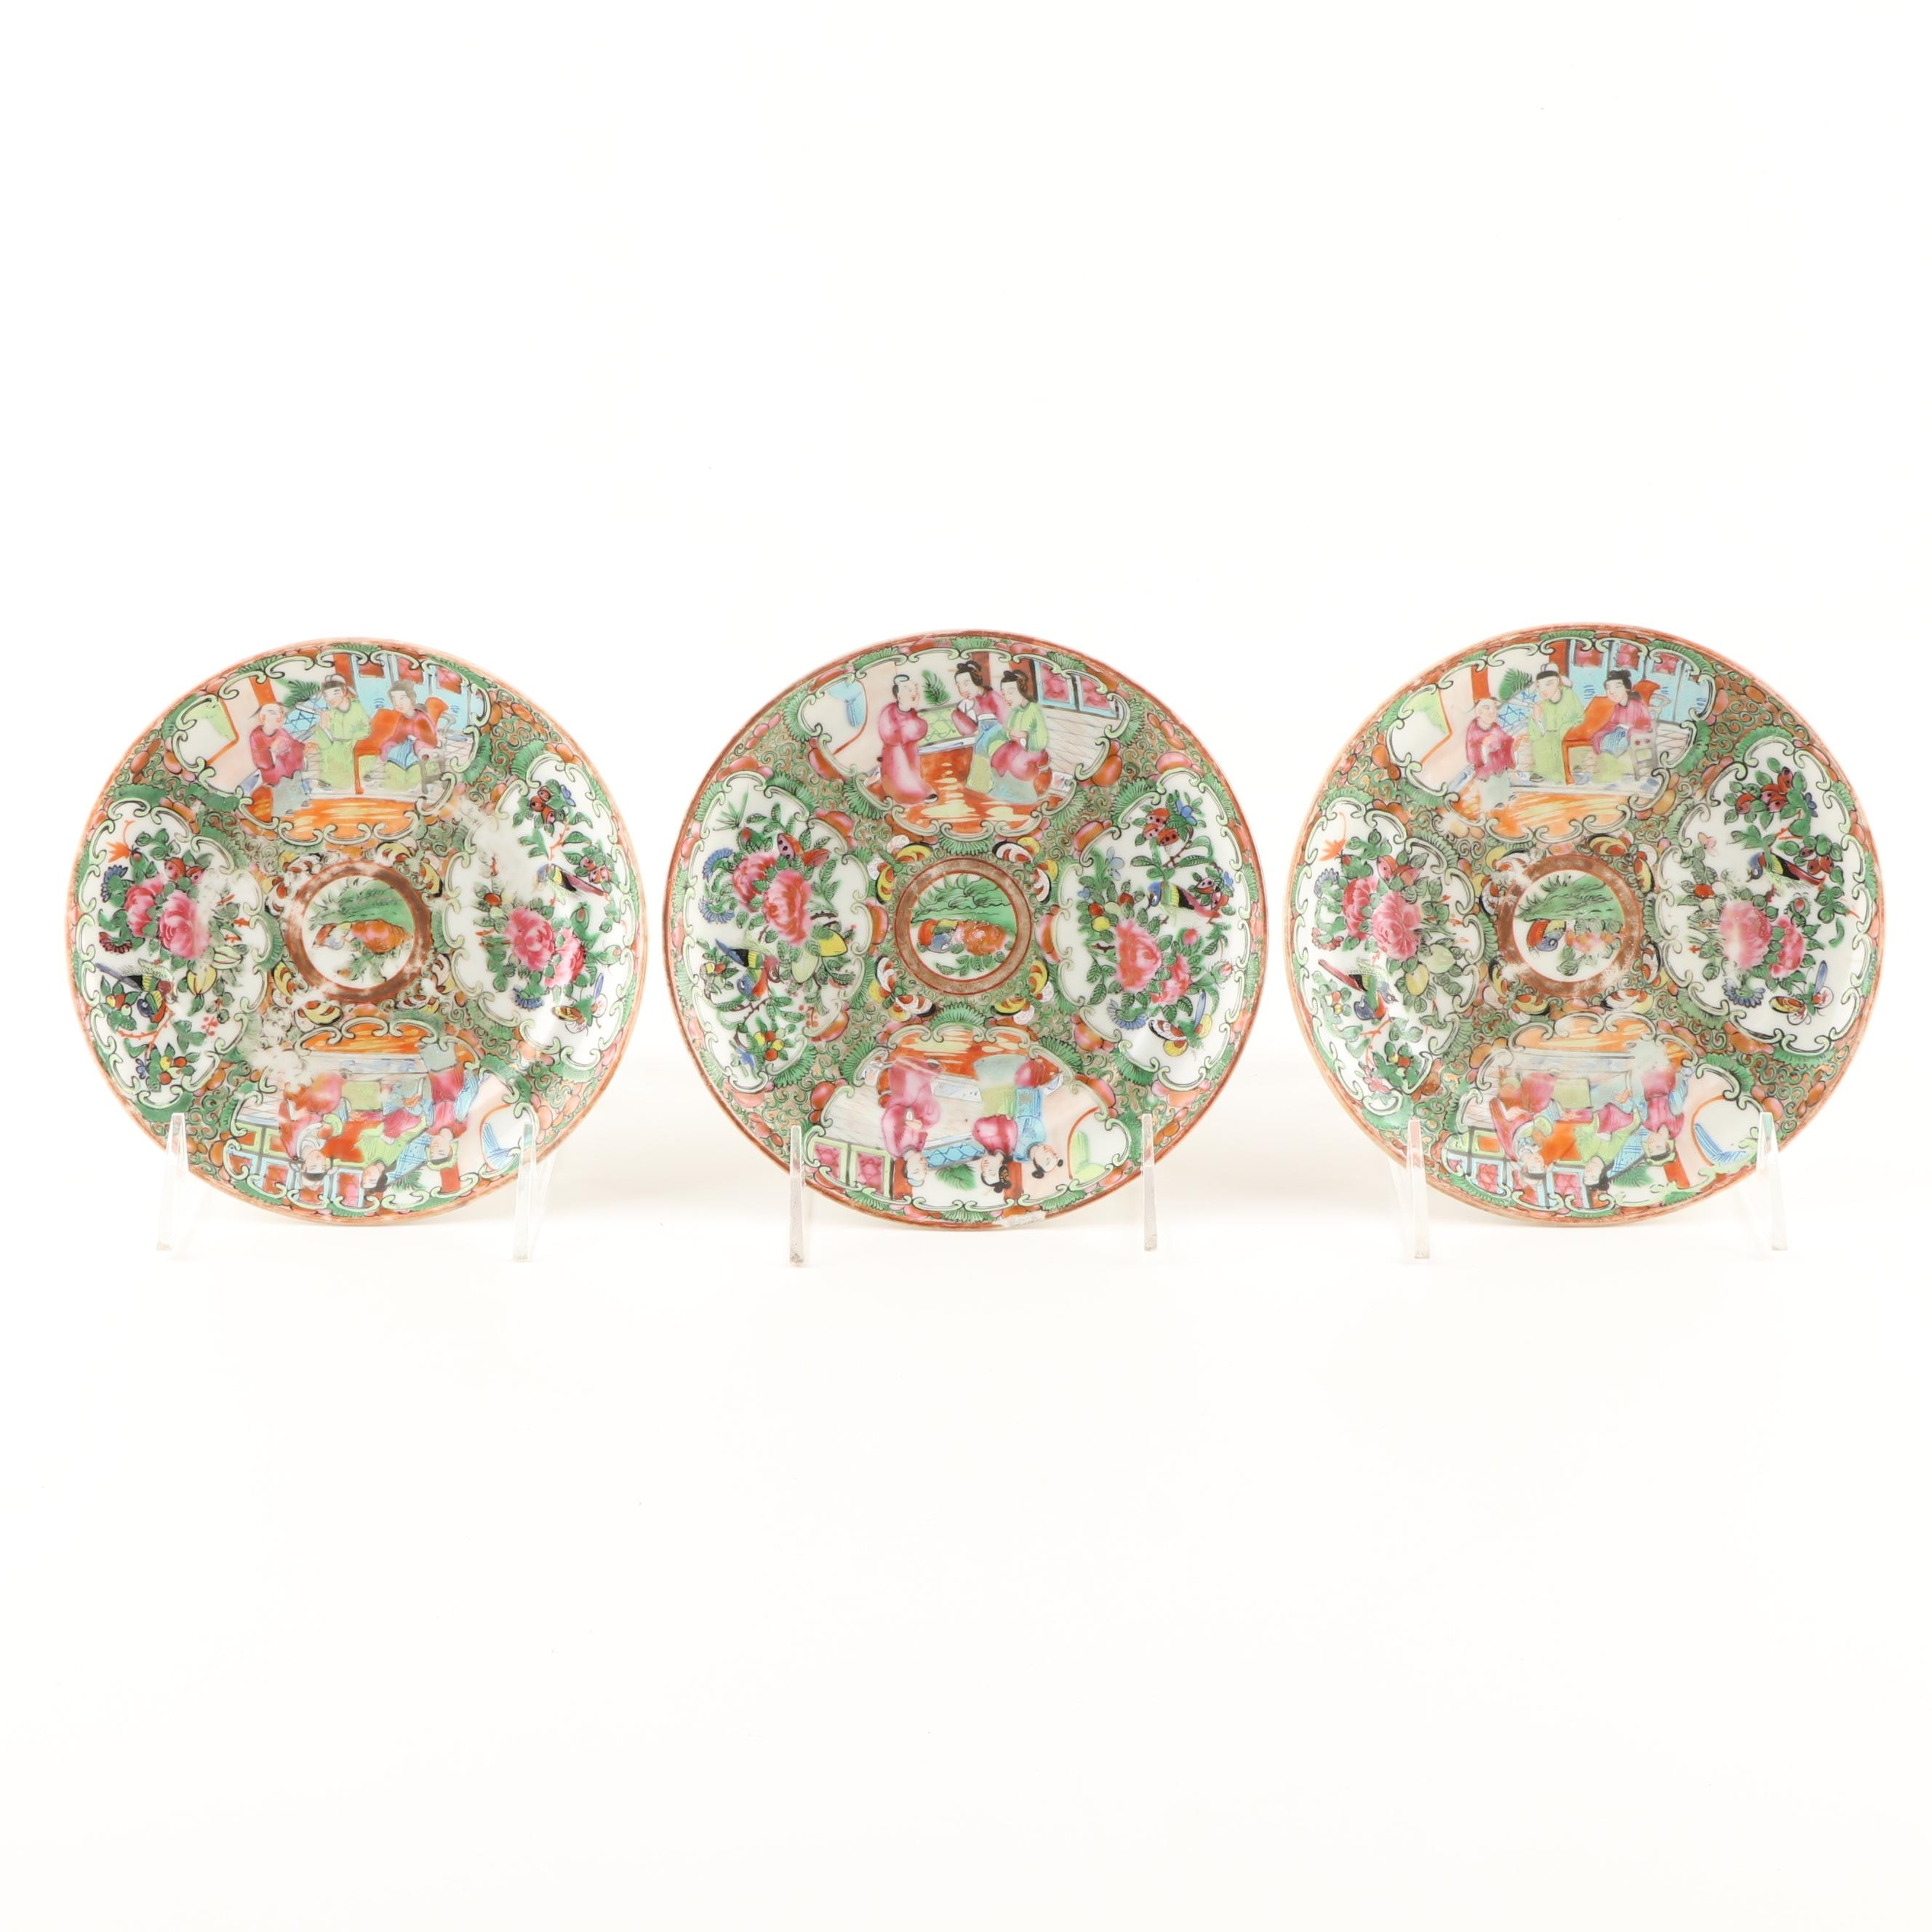 Chinese Rose Medallion Porcelain Plates, 19th Century